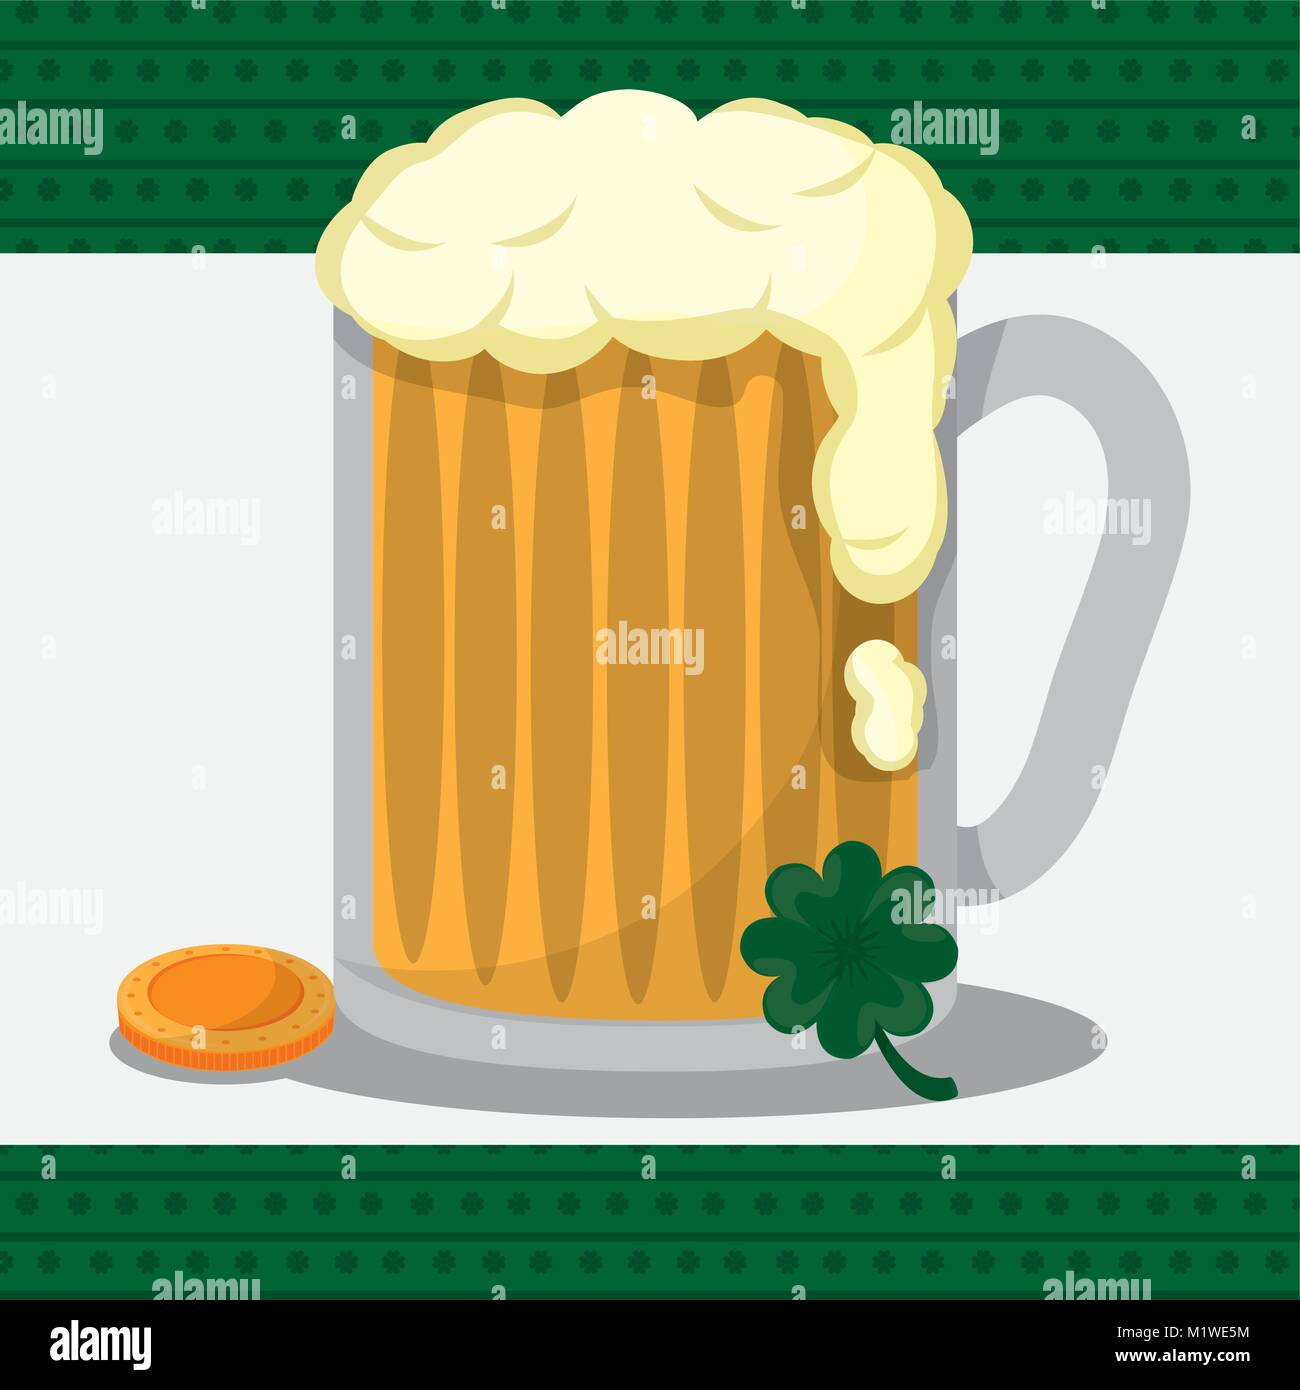 St Patricks day design - Stock Vector